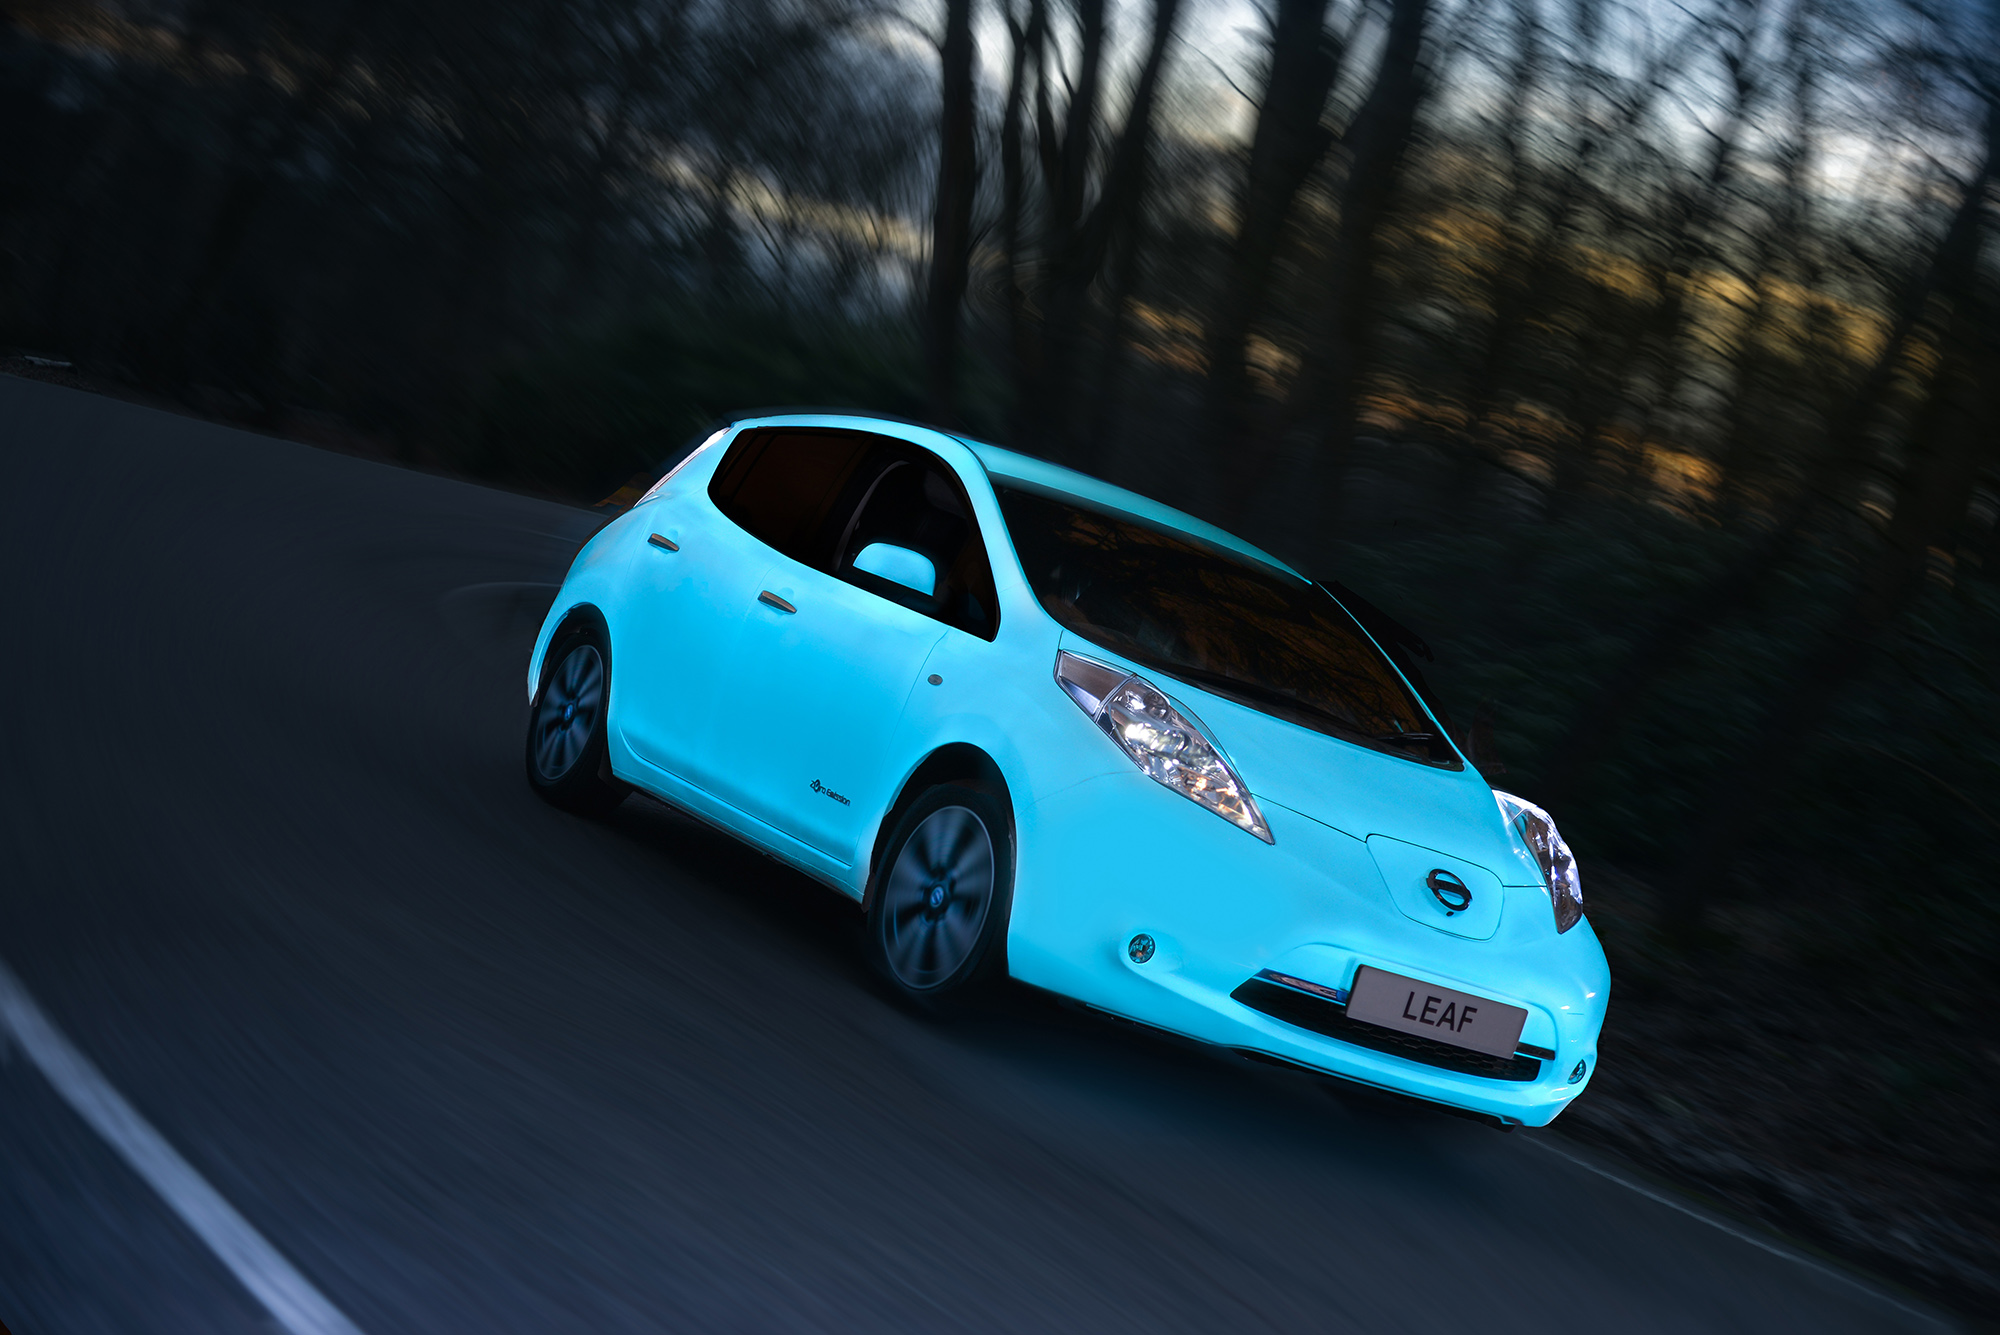 Nissan Leaf Gets Glow-In-The-Dark Paint Job To Promote Solar Energy: Video